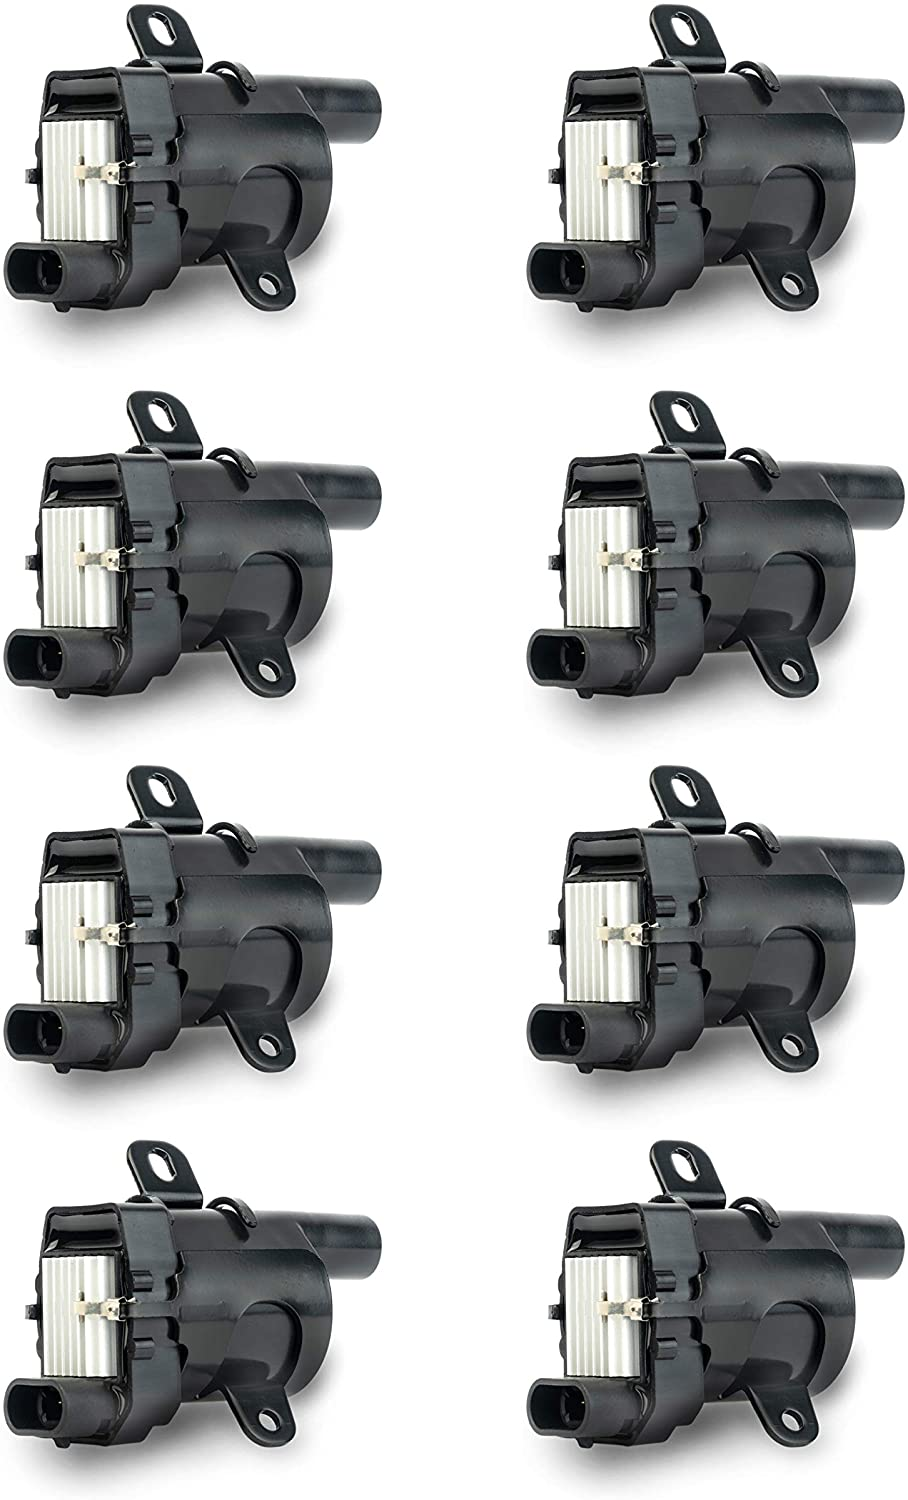 Ignition Coil Pack Set of 8 - Fits V8 Chevy Silverado 1500, 2500, Tahoe, Suburban GMC Sierra, Savana, Yukon, XL 1500, 2500 and more - Replaces 12563293, D585, C1251, 19005218, UF262, GN10119, 10457730